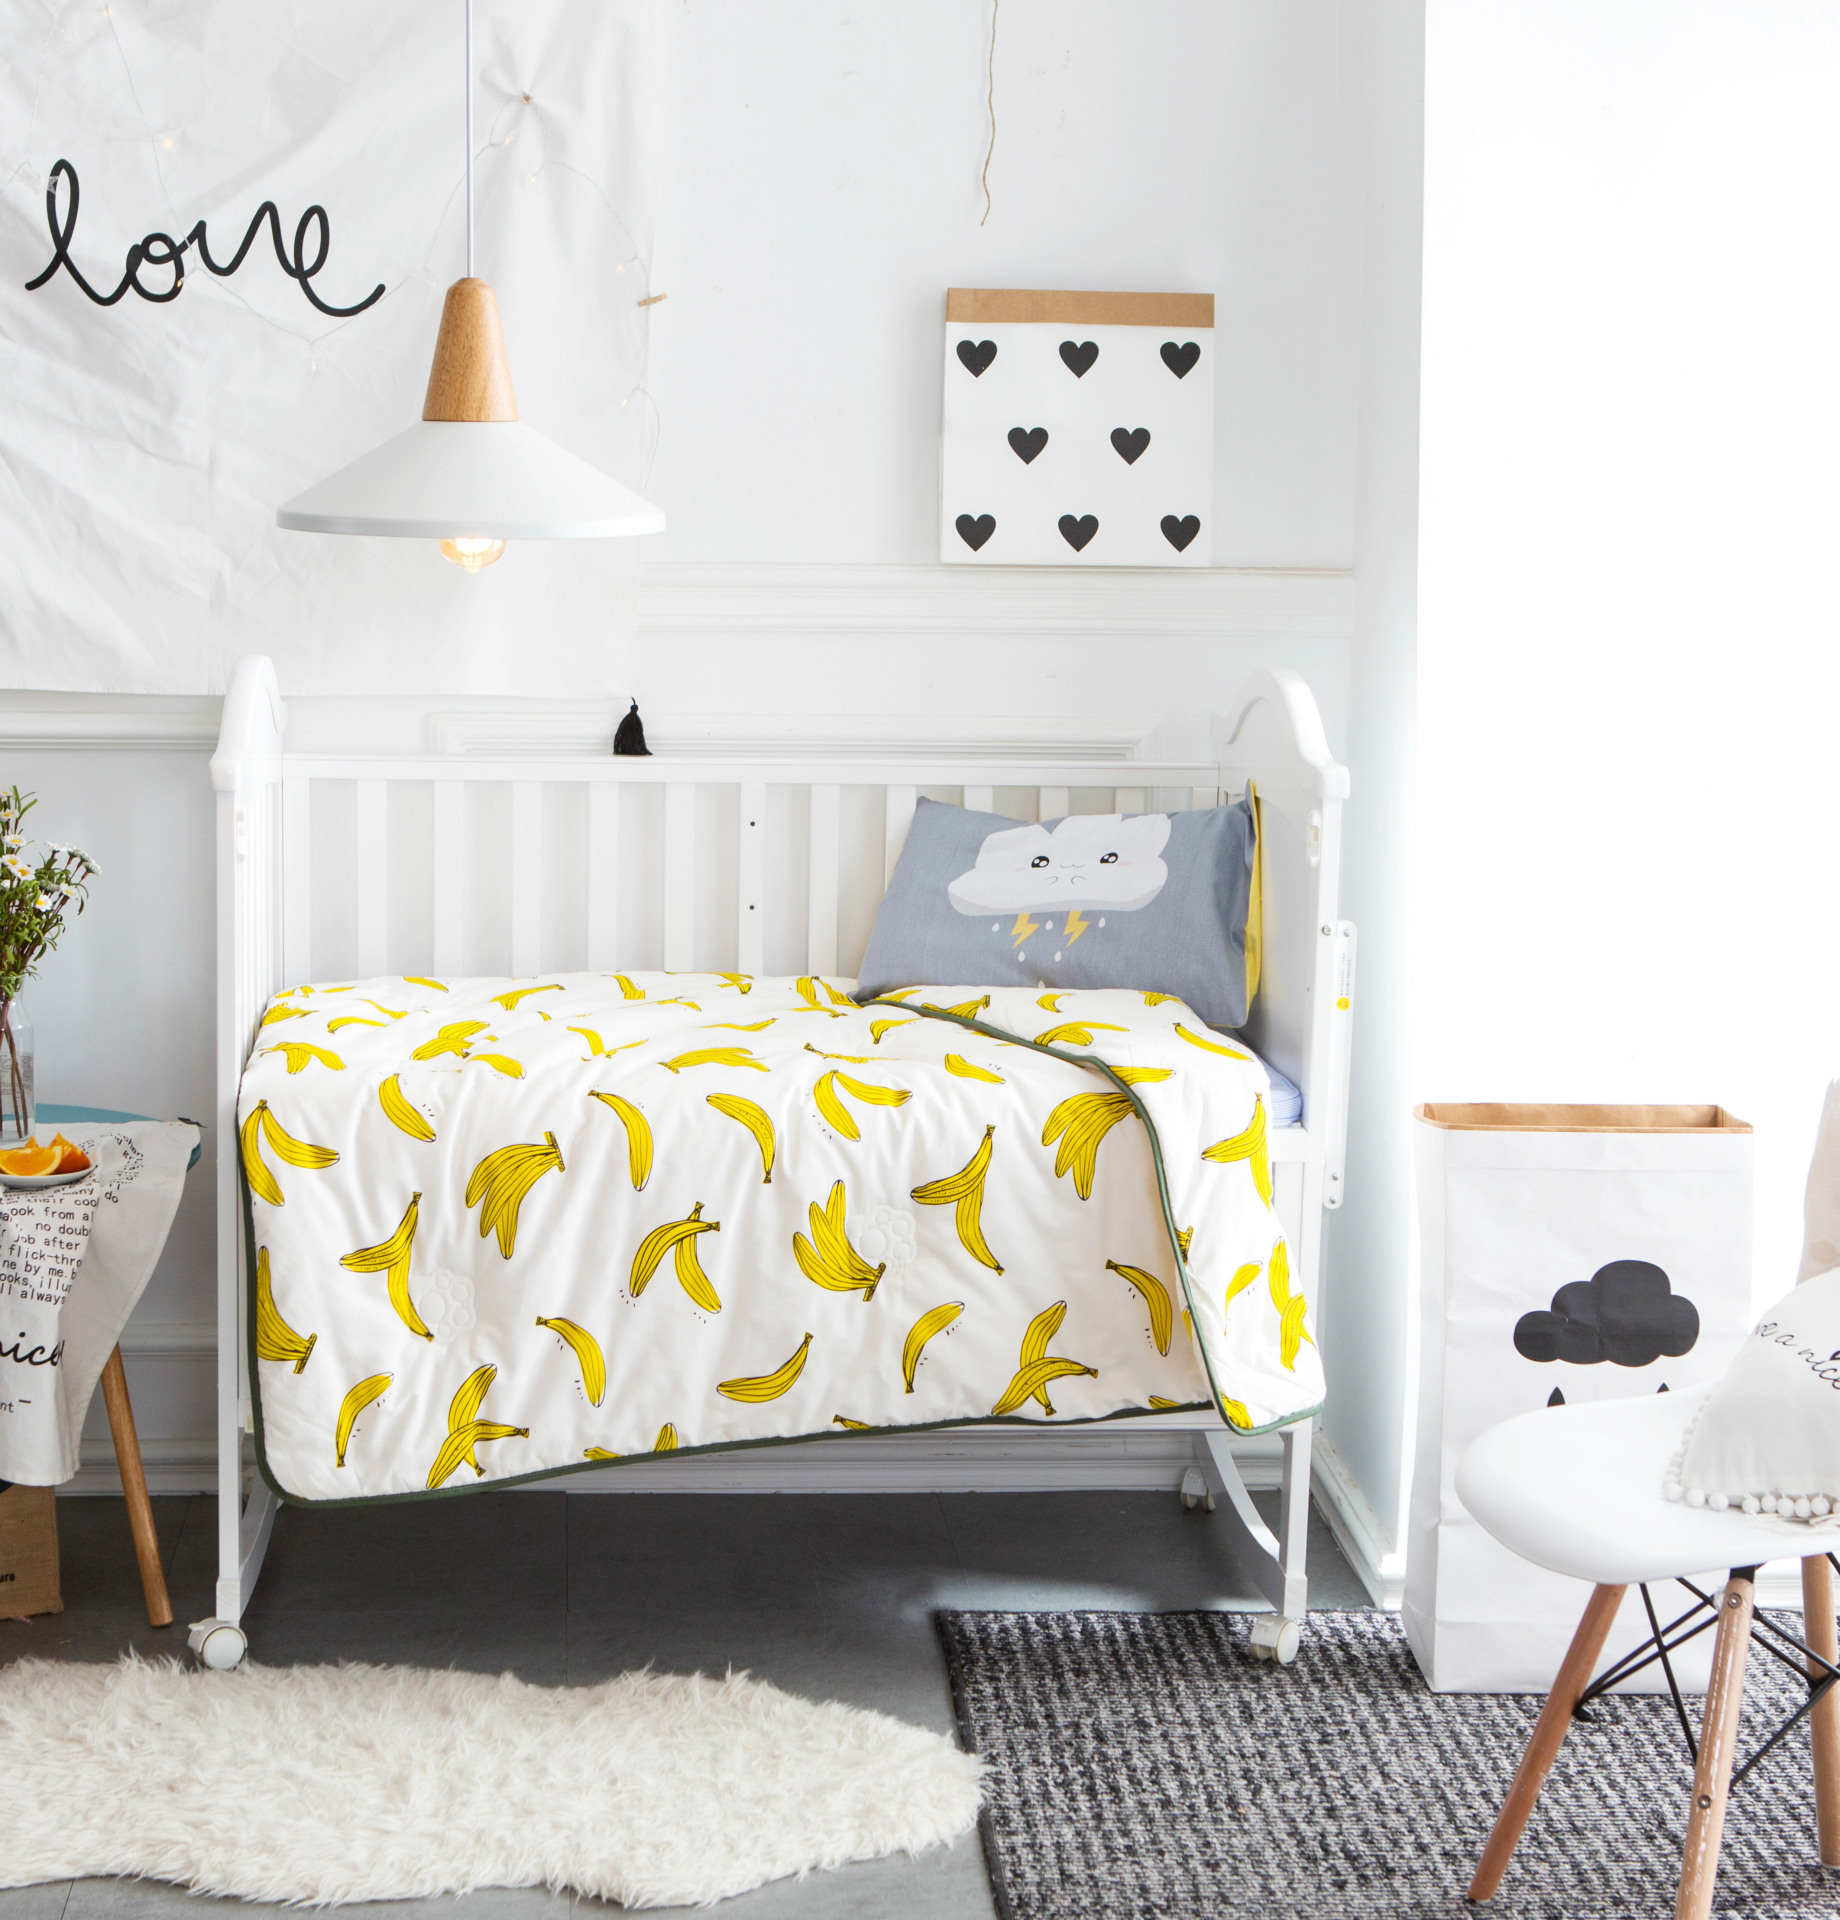 110x140cm Baby quilt baby summer duvet air conditioner blanket for baby bed crib bedding set Swan banana  cactus pattern design king double kyn a6t 6 zirconia ceramic chef knife w sheath yellow white